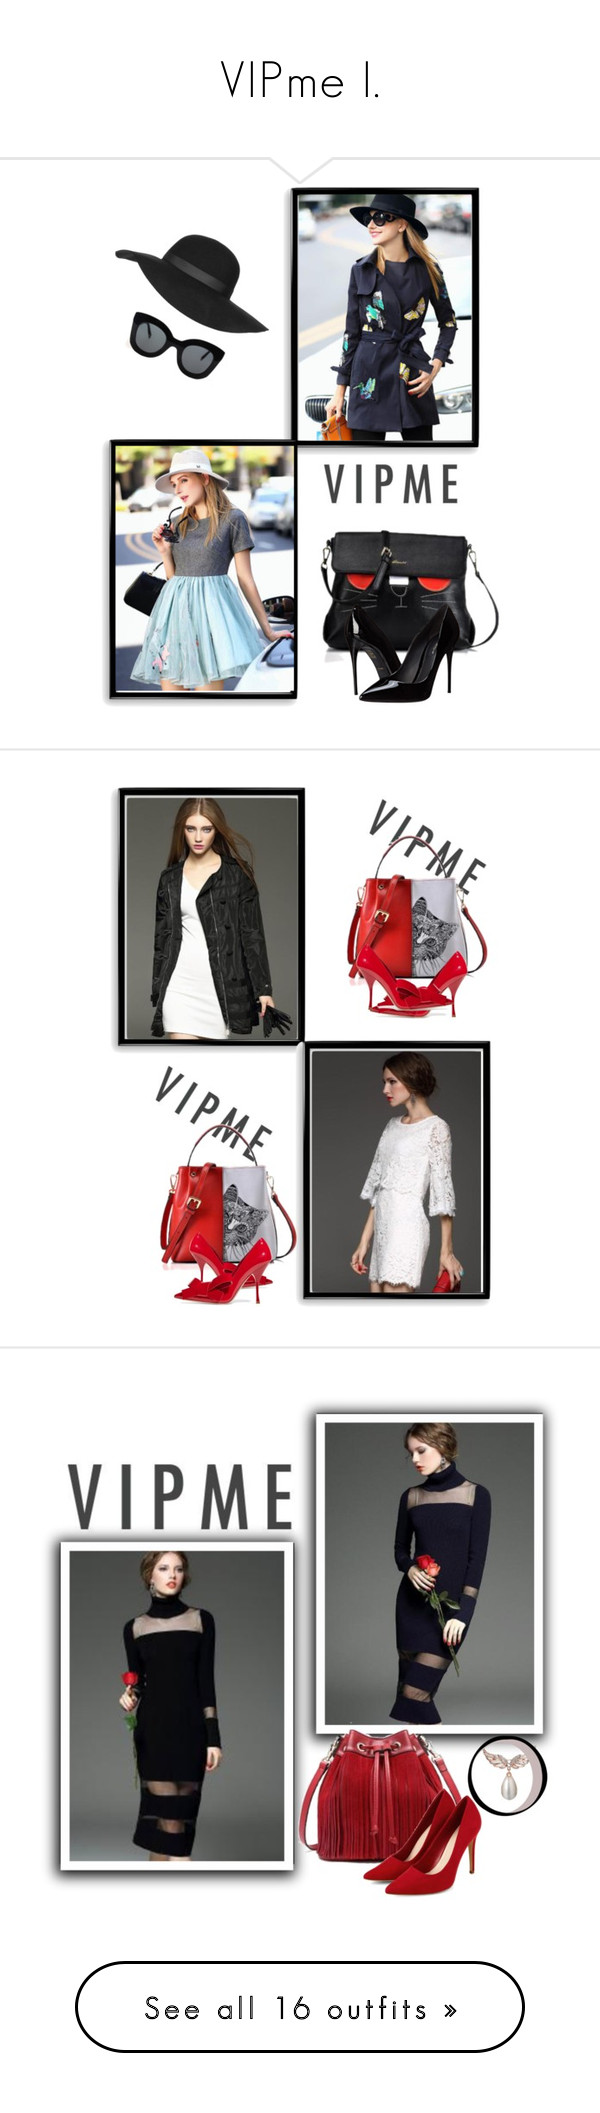 """""""VIPme I."""" by zura-b ❤ liked on Polyvore featuring Bomedo, Dolce&Gabbana, Topshop, CÉLINE, women's clothing, women, female, woman, misses and juniors"""